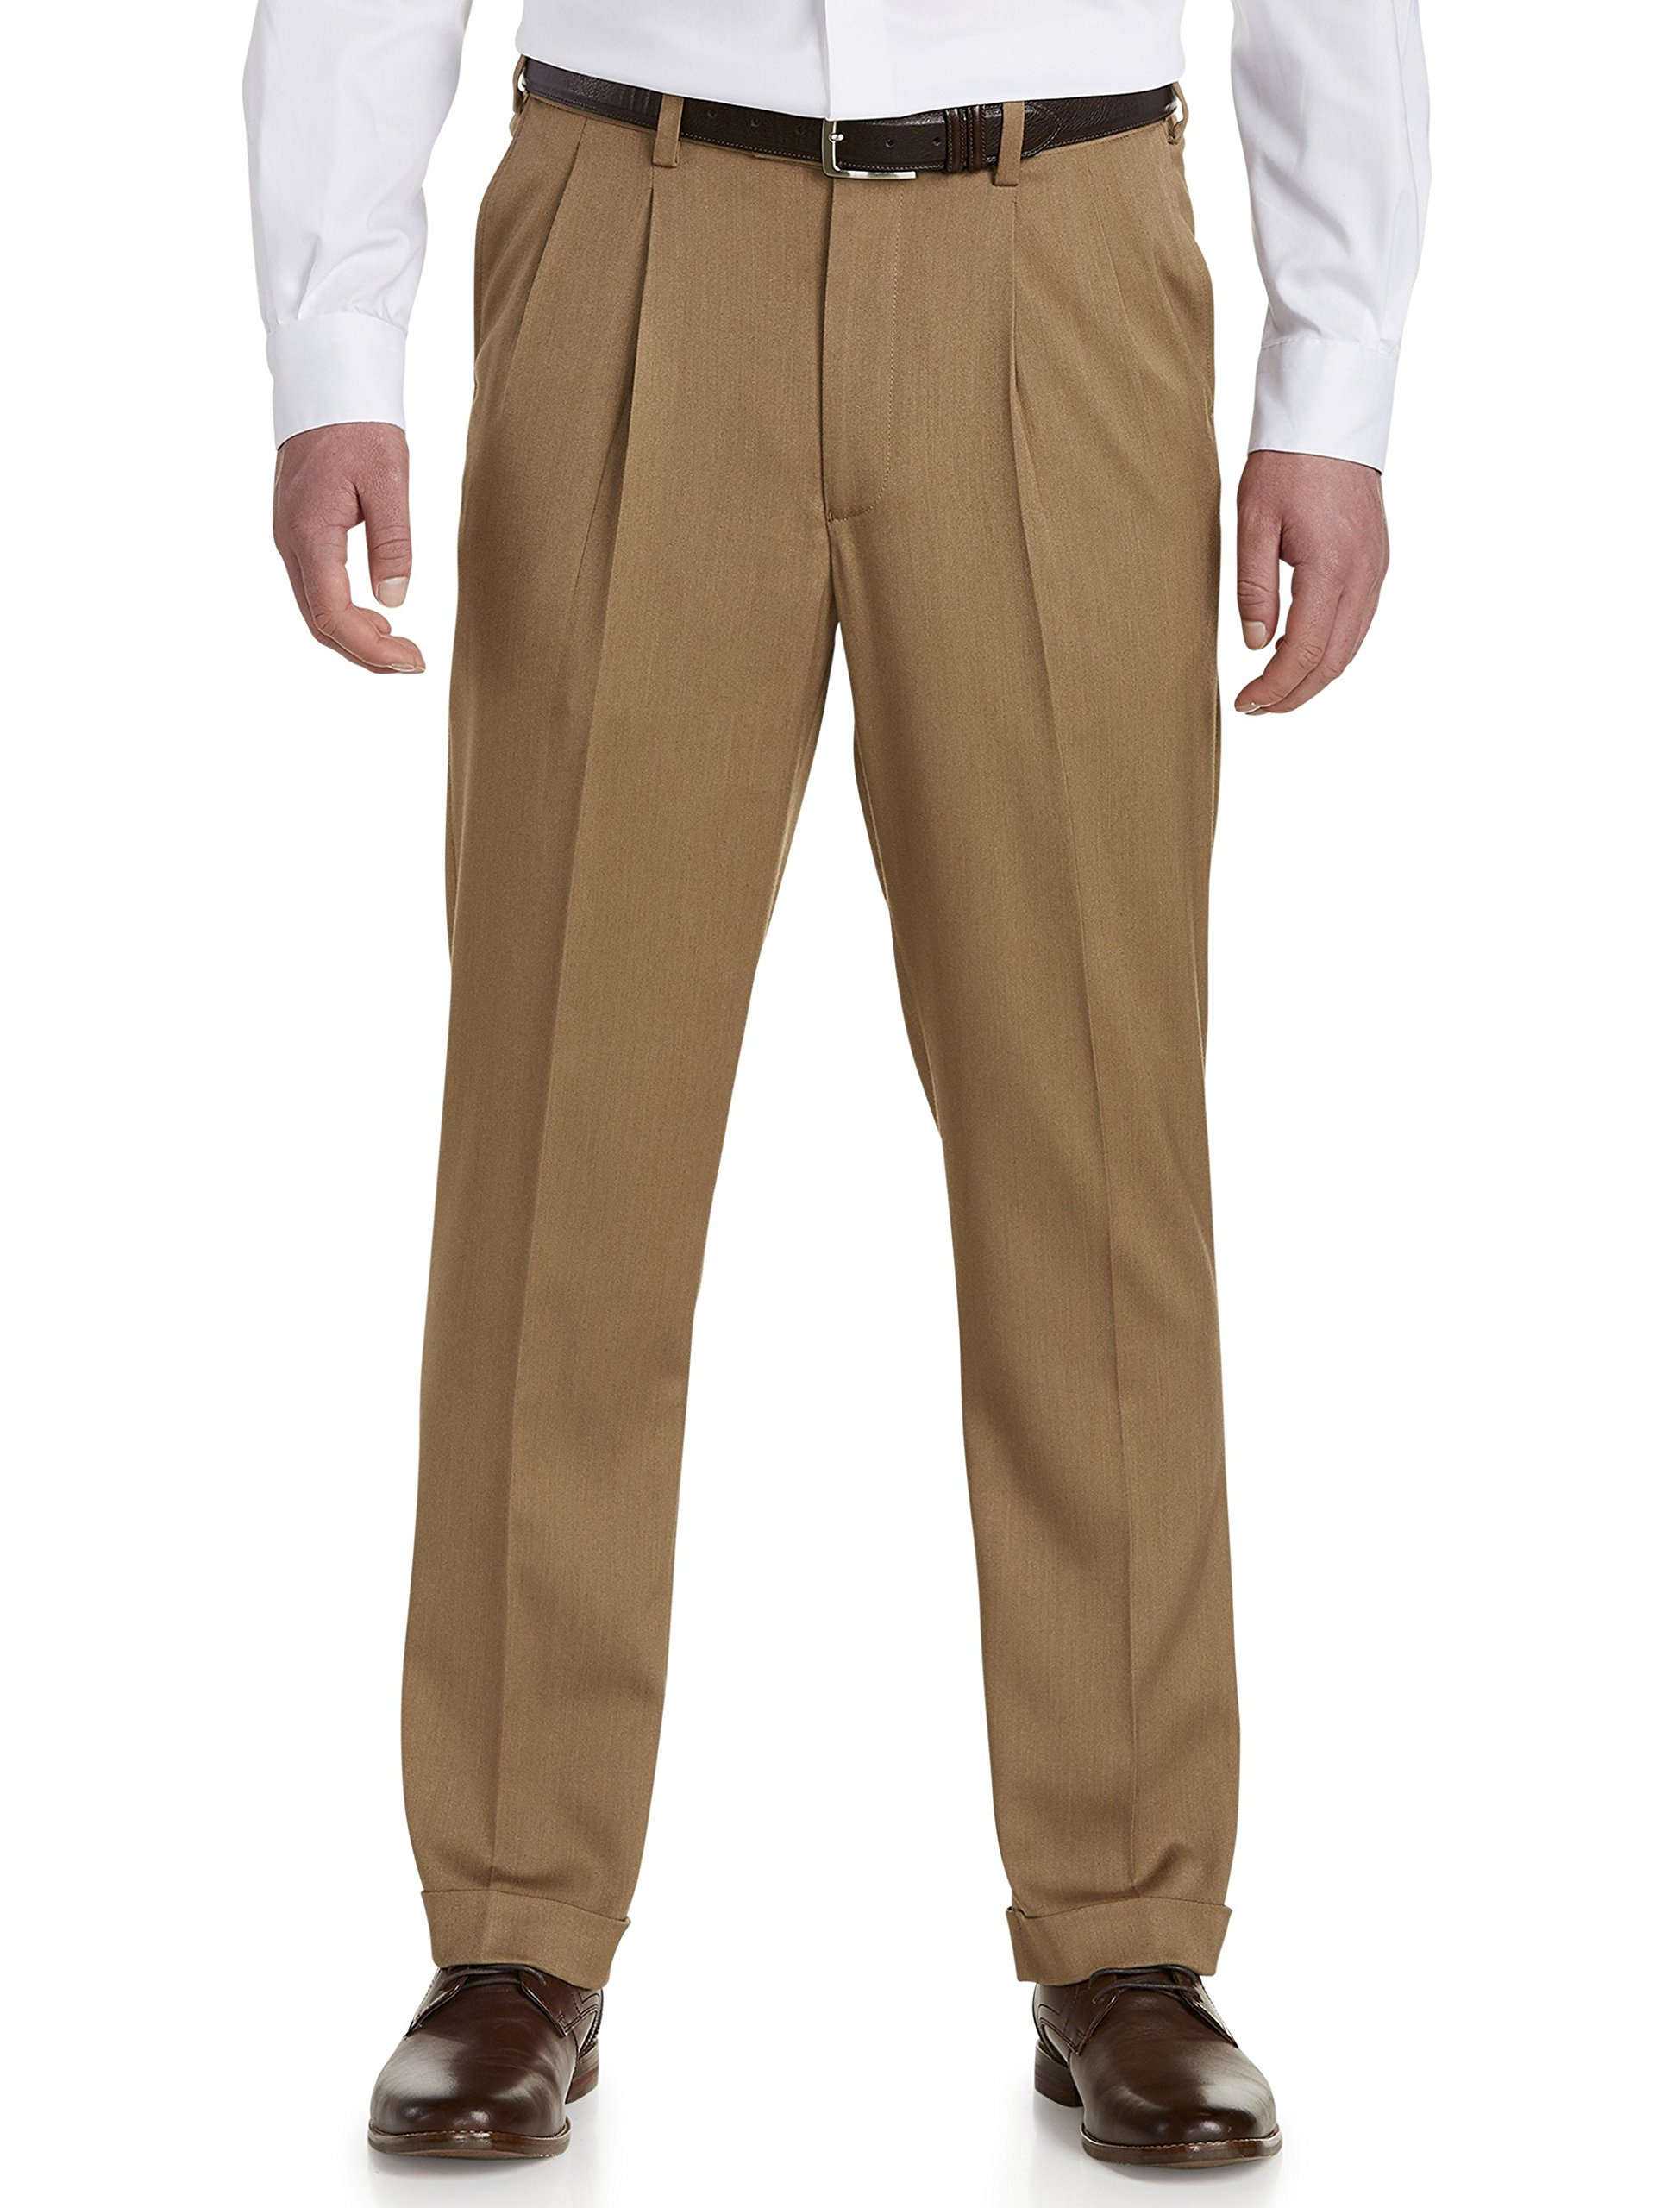 Gold Series by DXL Big and Tall Waist-Relaxer Luster Sateen Hemmed Pleated Suit Pants Khaki by Gold Series